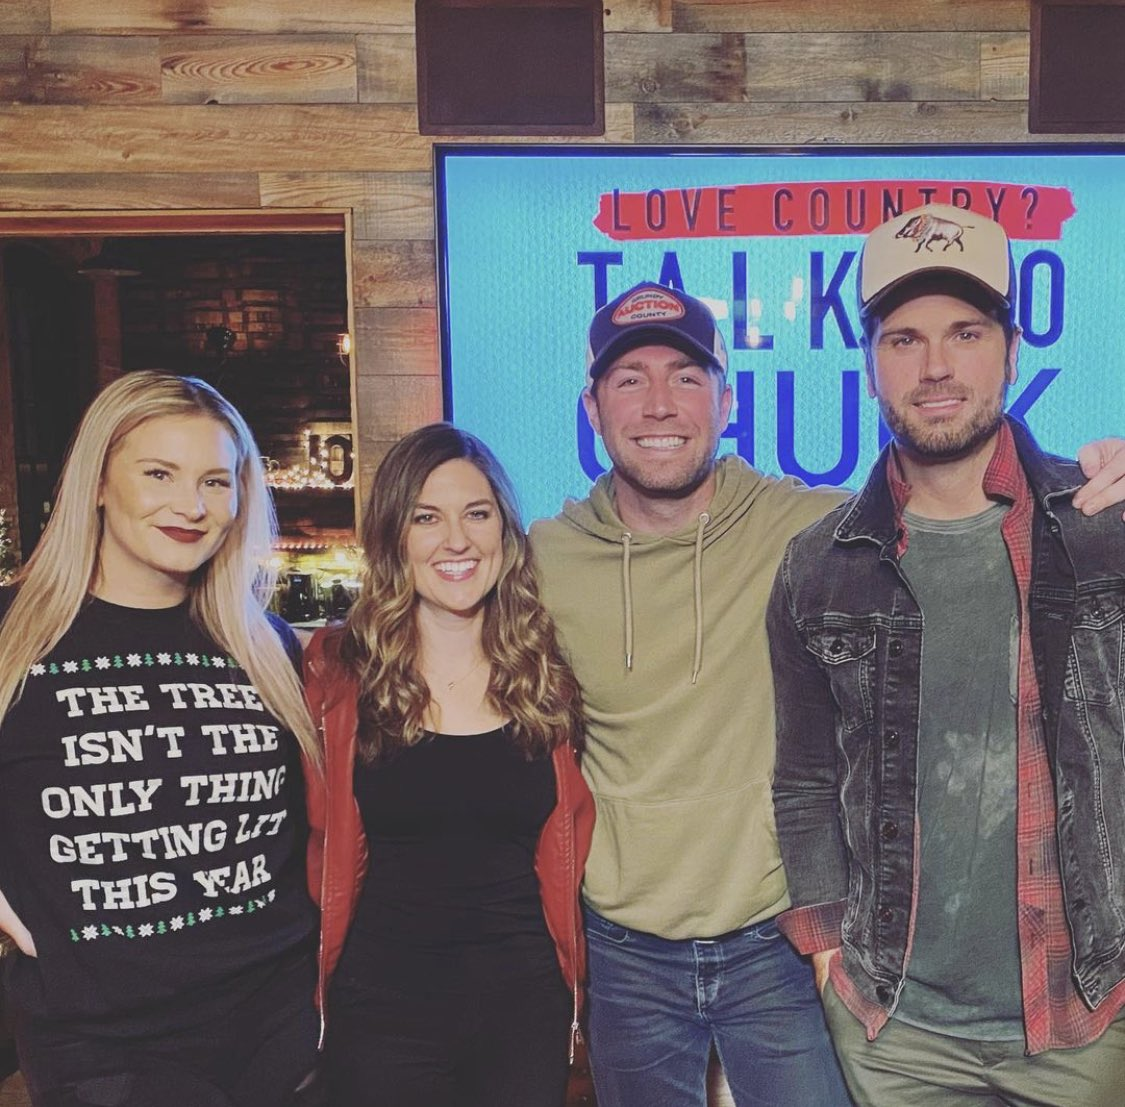 Had a blast on this podcast!! @chuckwicksmusic you are the man, thank you for having me!! Airs Dec. 24th 🤘